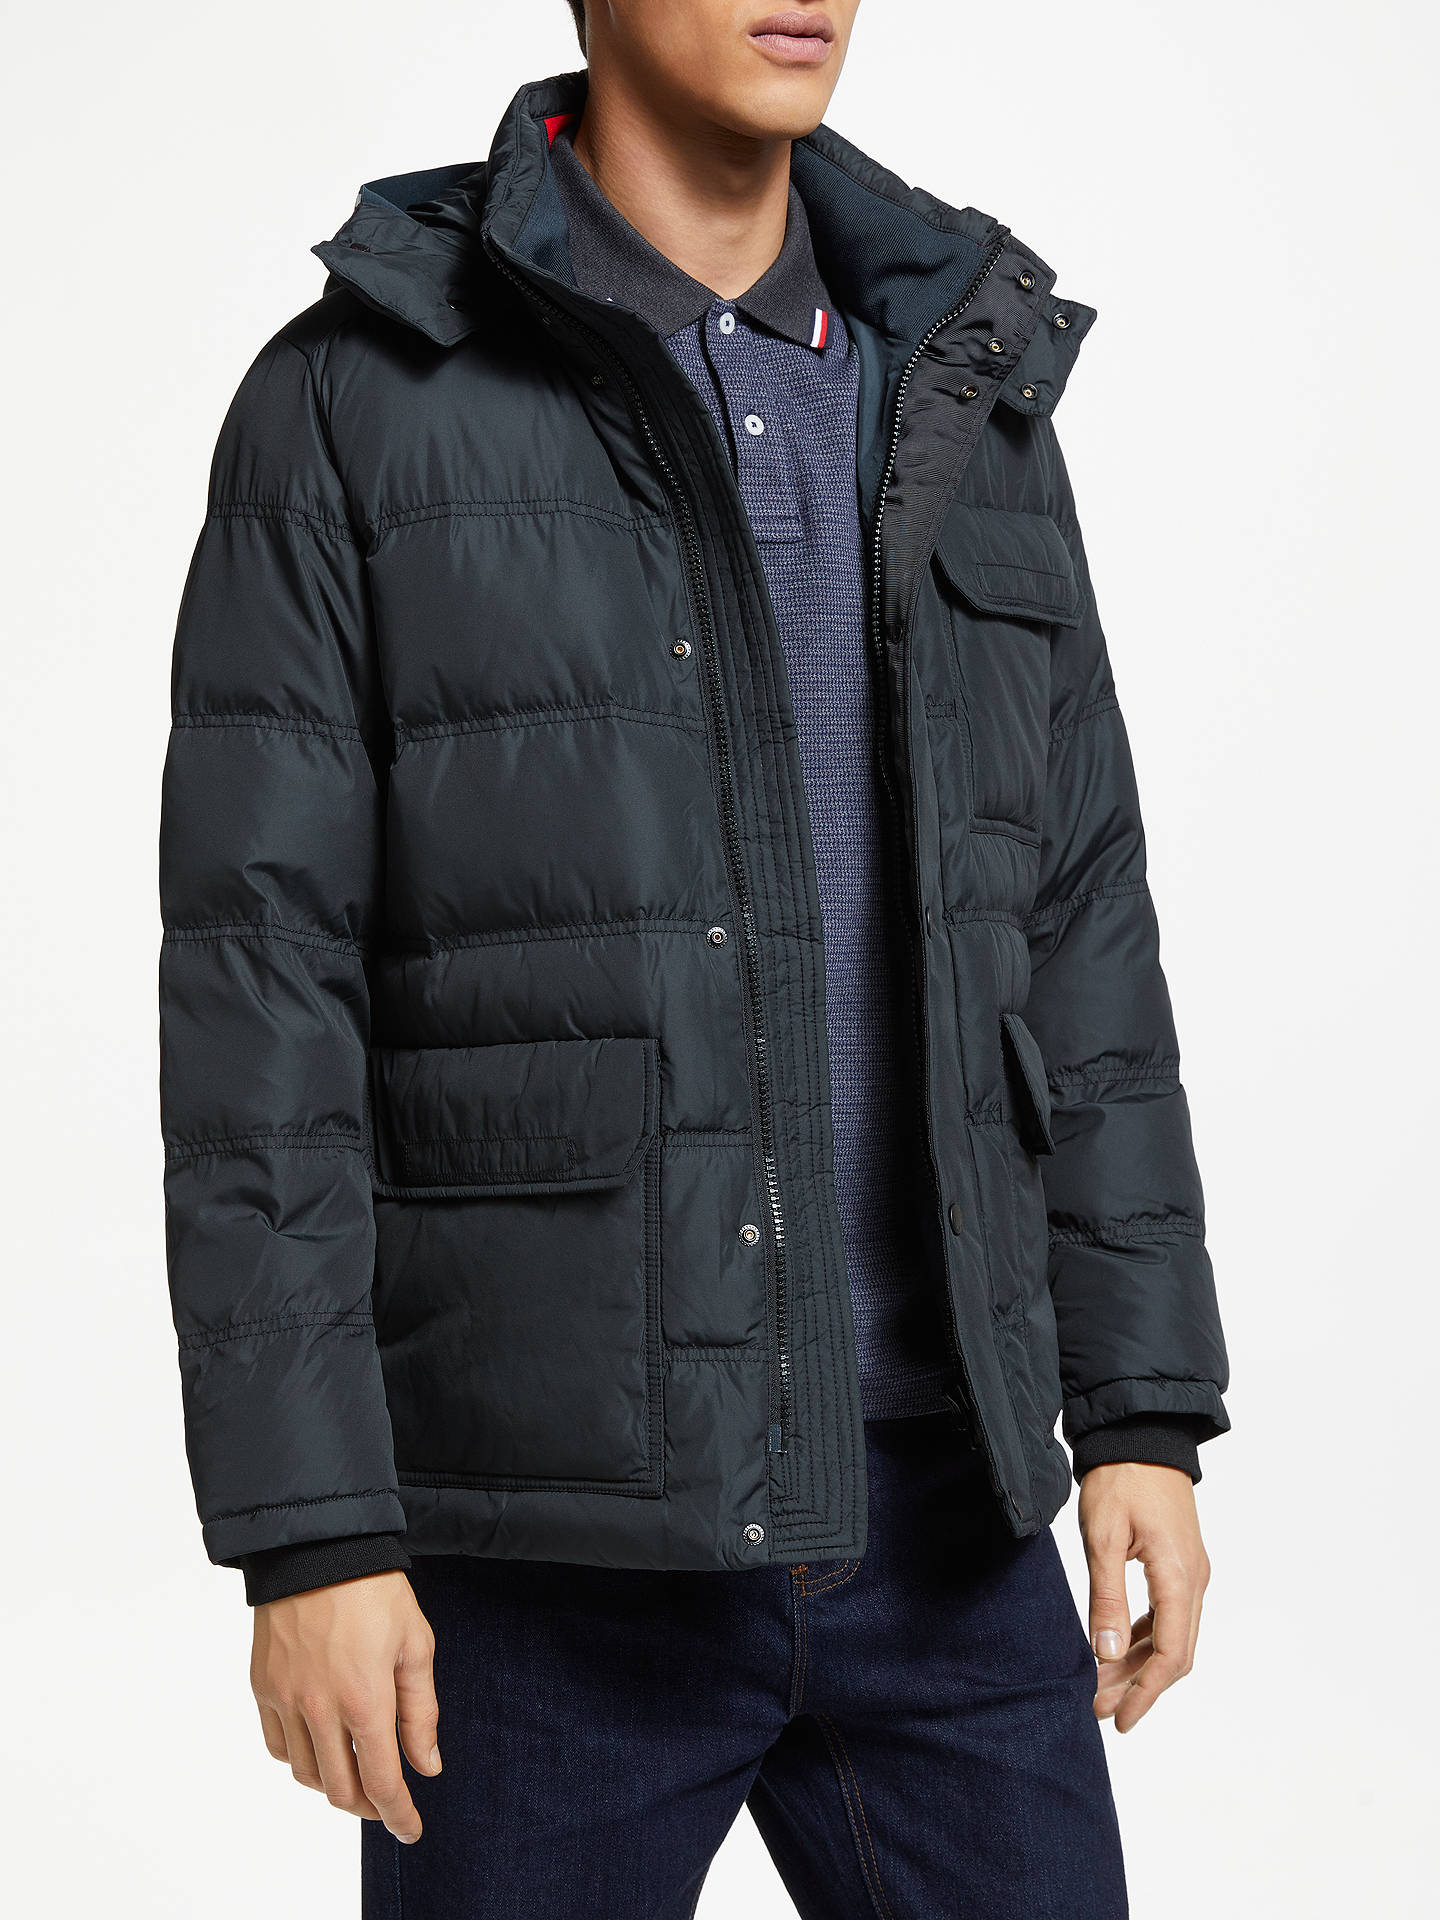 7ca5f4d5 Buy Tommy Hilfiger Down Hooded Bomber Jacket, Black, XL Online at  johnlewis.com ...